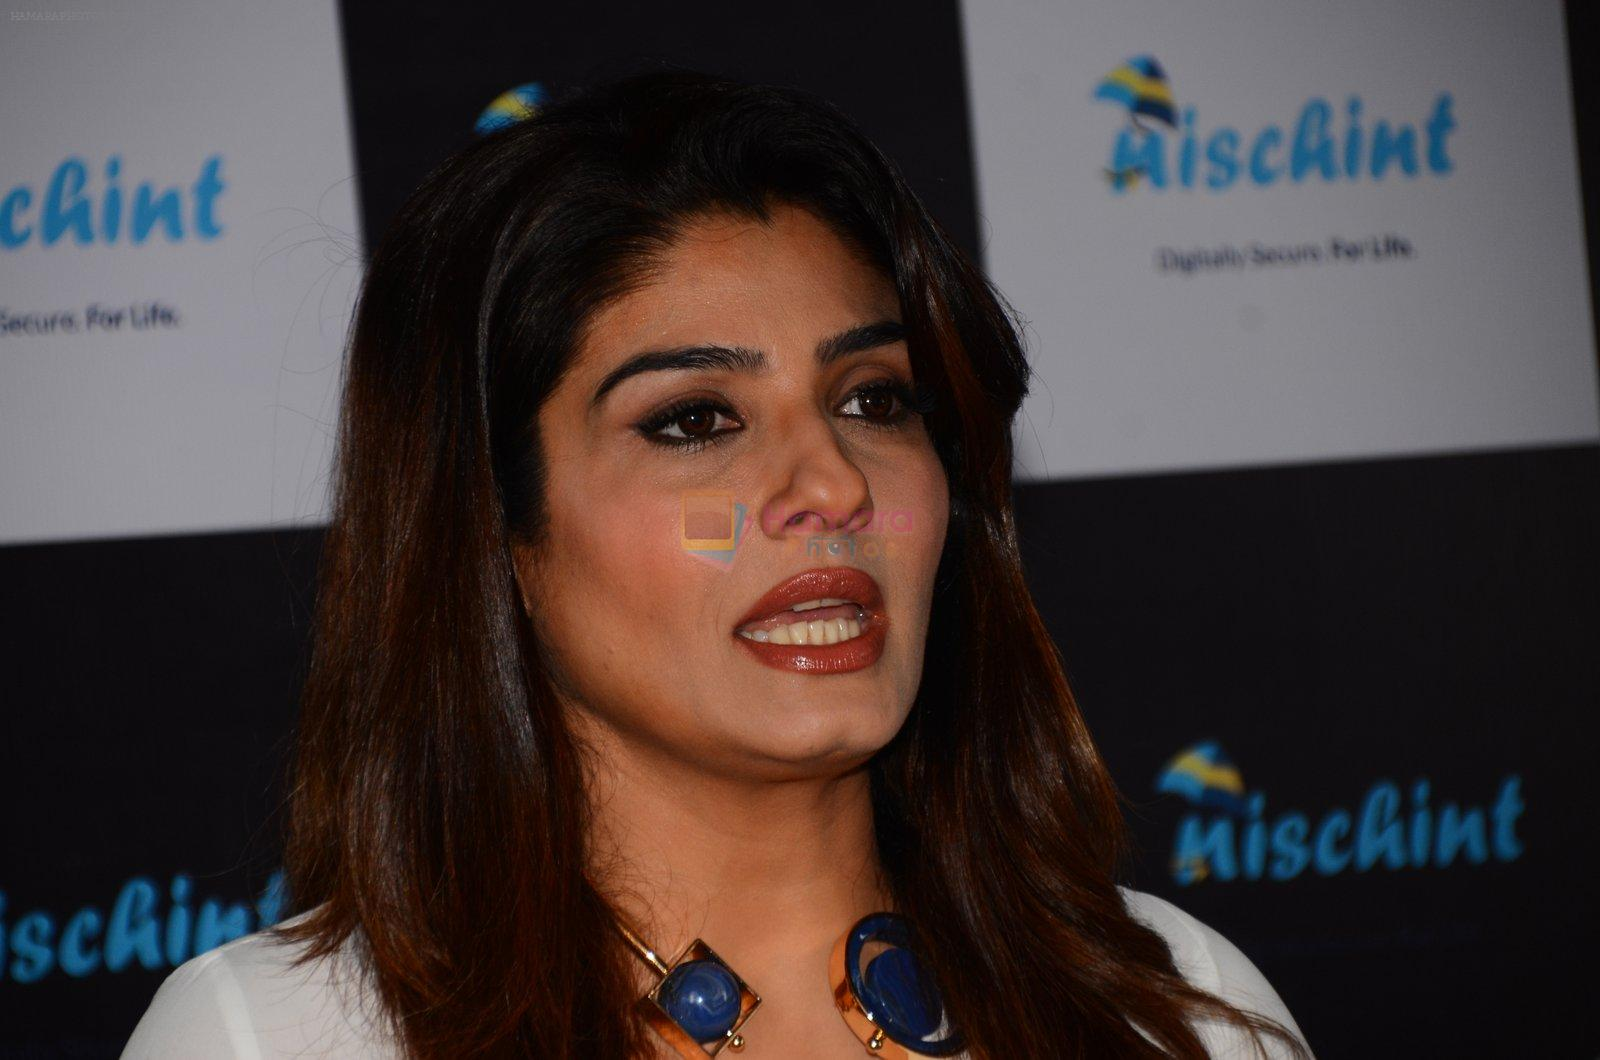 Raveena Tandon at Nischint app launch on 18th Oct 2016